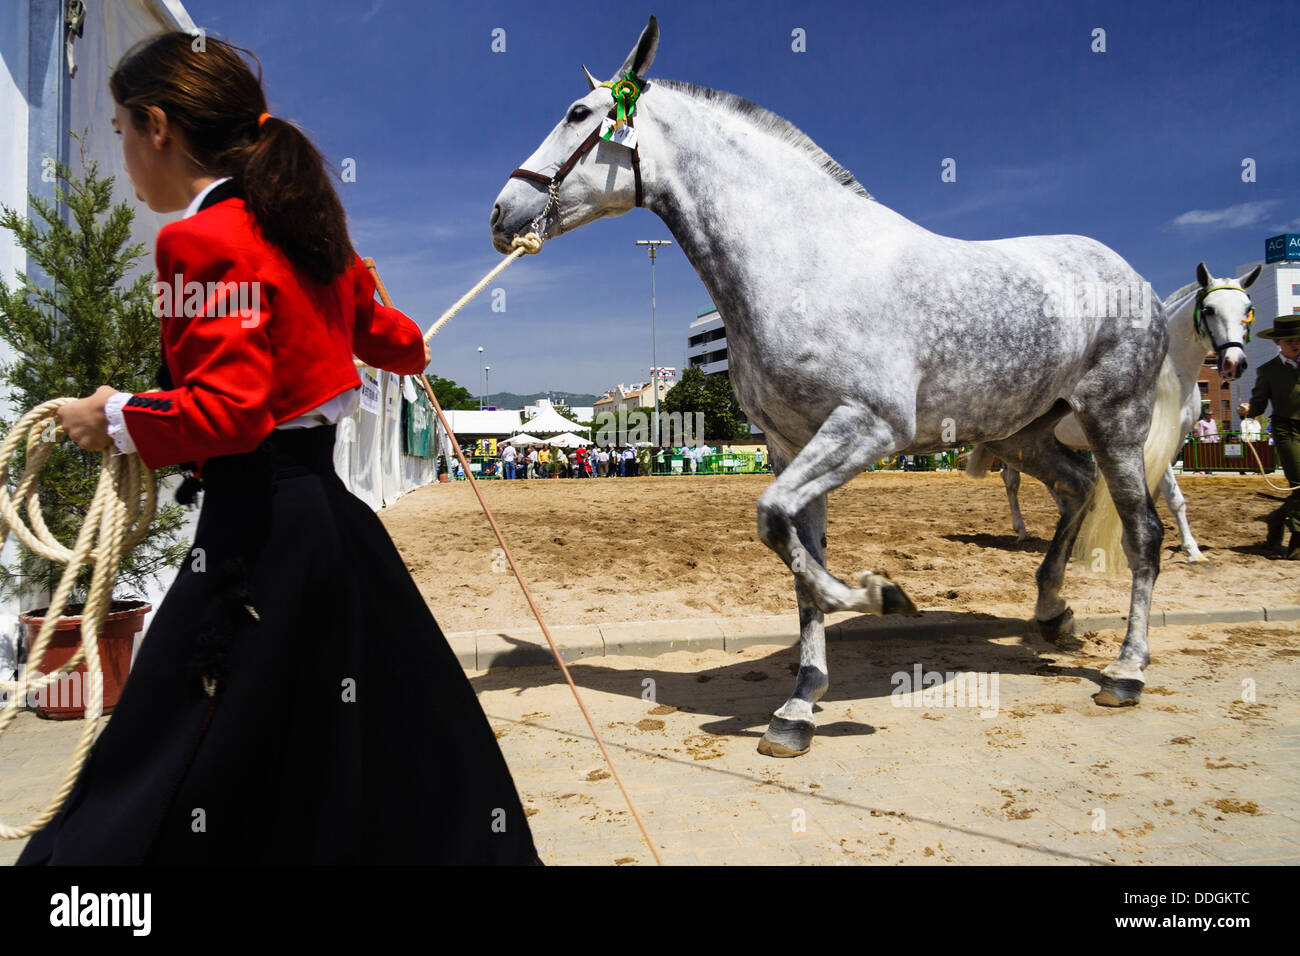 Girl in traditional riding dress taking her thoroughbred mare at the Cordoba Horse Fair. Andalusia, Spain - Stock Image